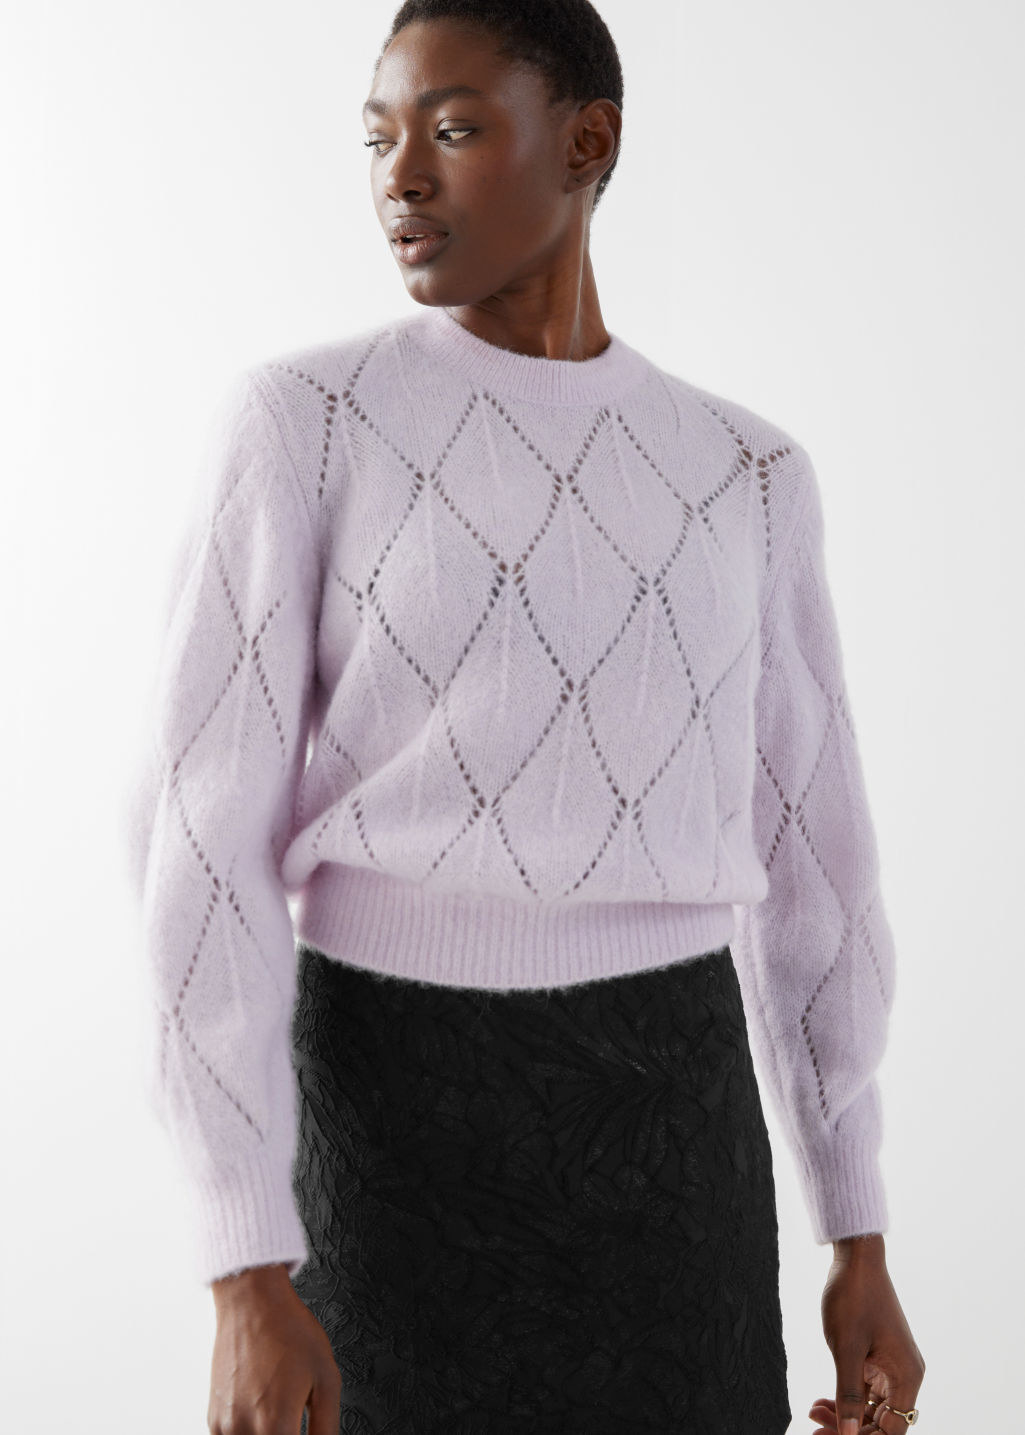 model wearing fuzzy sweater with slightly puffy sleeves